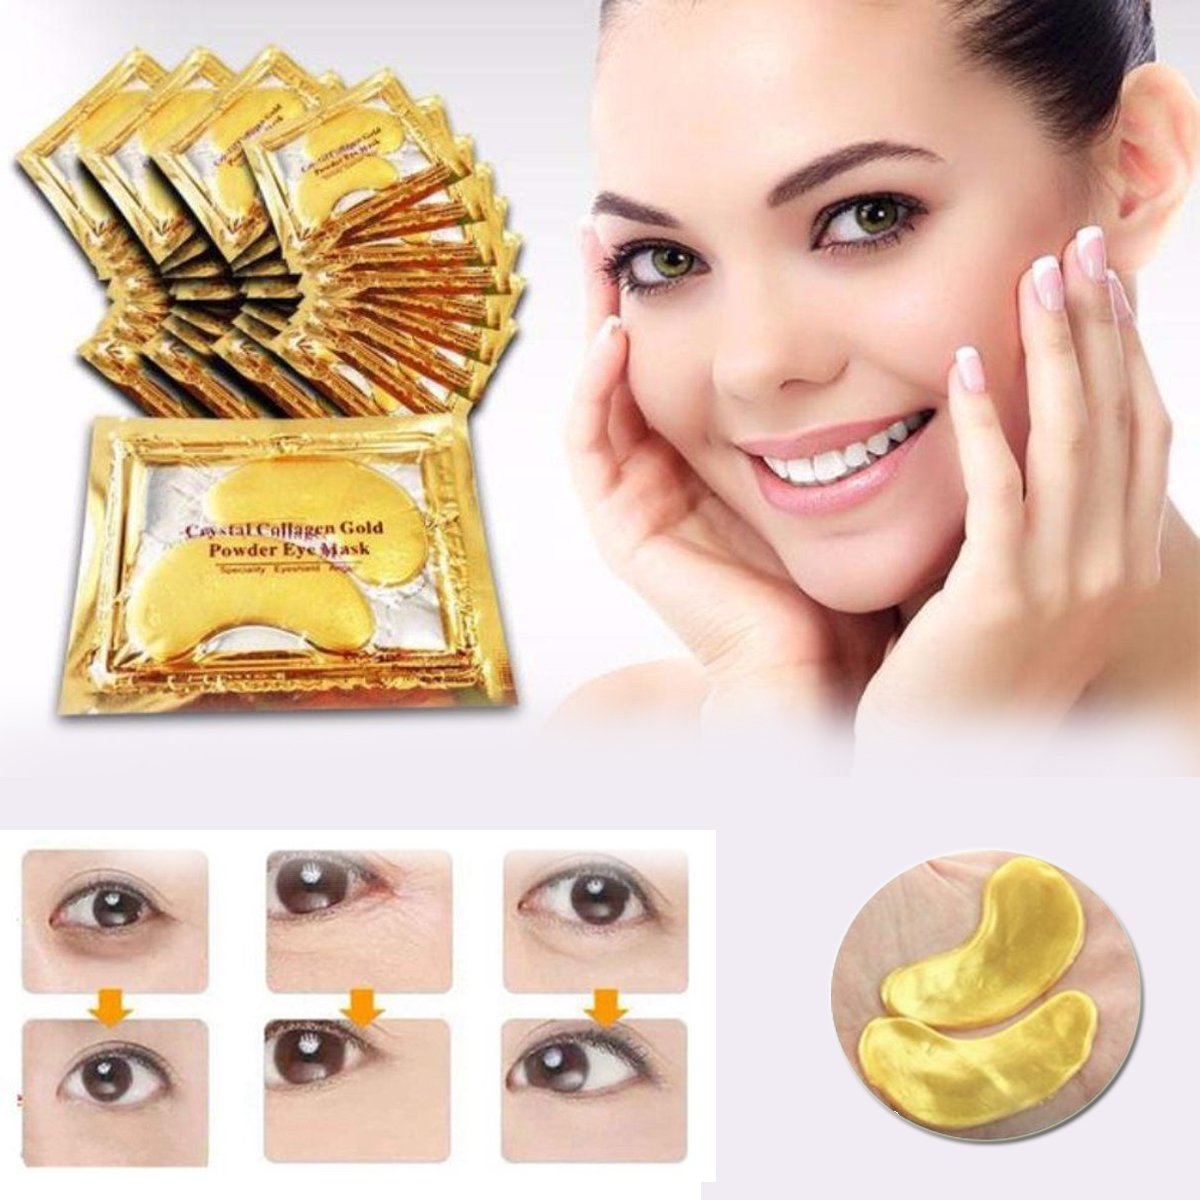 24k Gold Eye Pads-30 Pairs Collagen Eye Mask Powder Crystal Gel For Anti-Aging & Moisturizing Reducing Dark Circles, Puffiness, Wrinkles by INSANY by INSANY (Image #3)